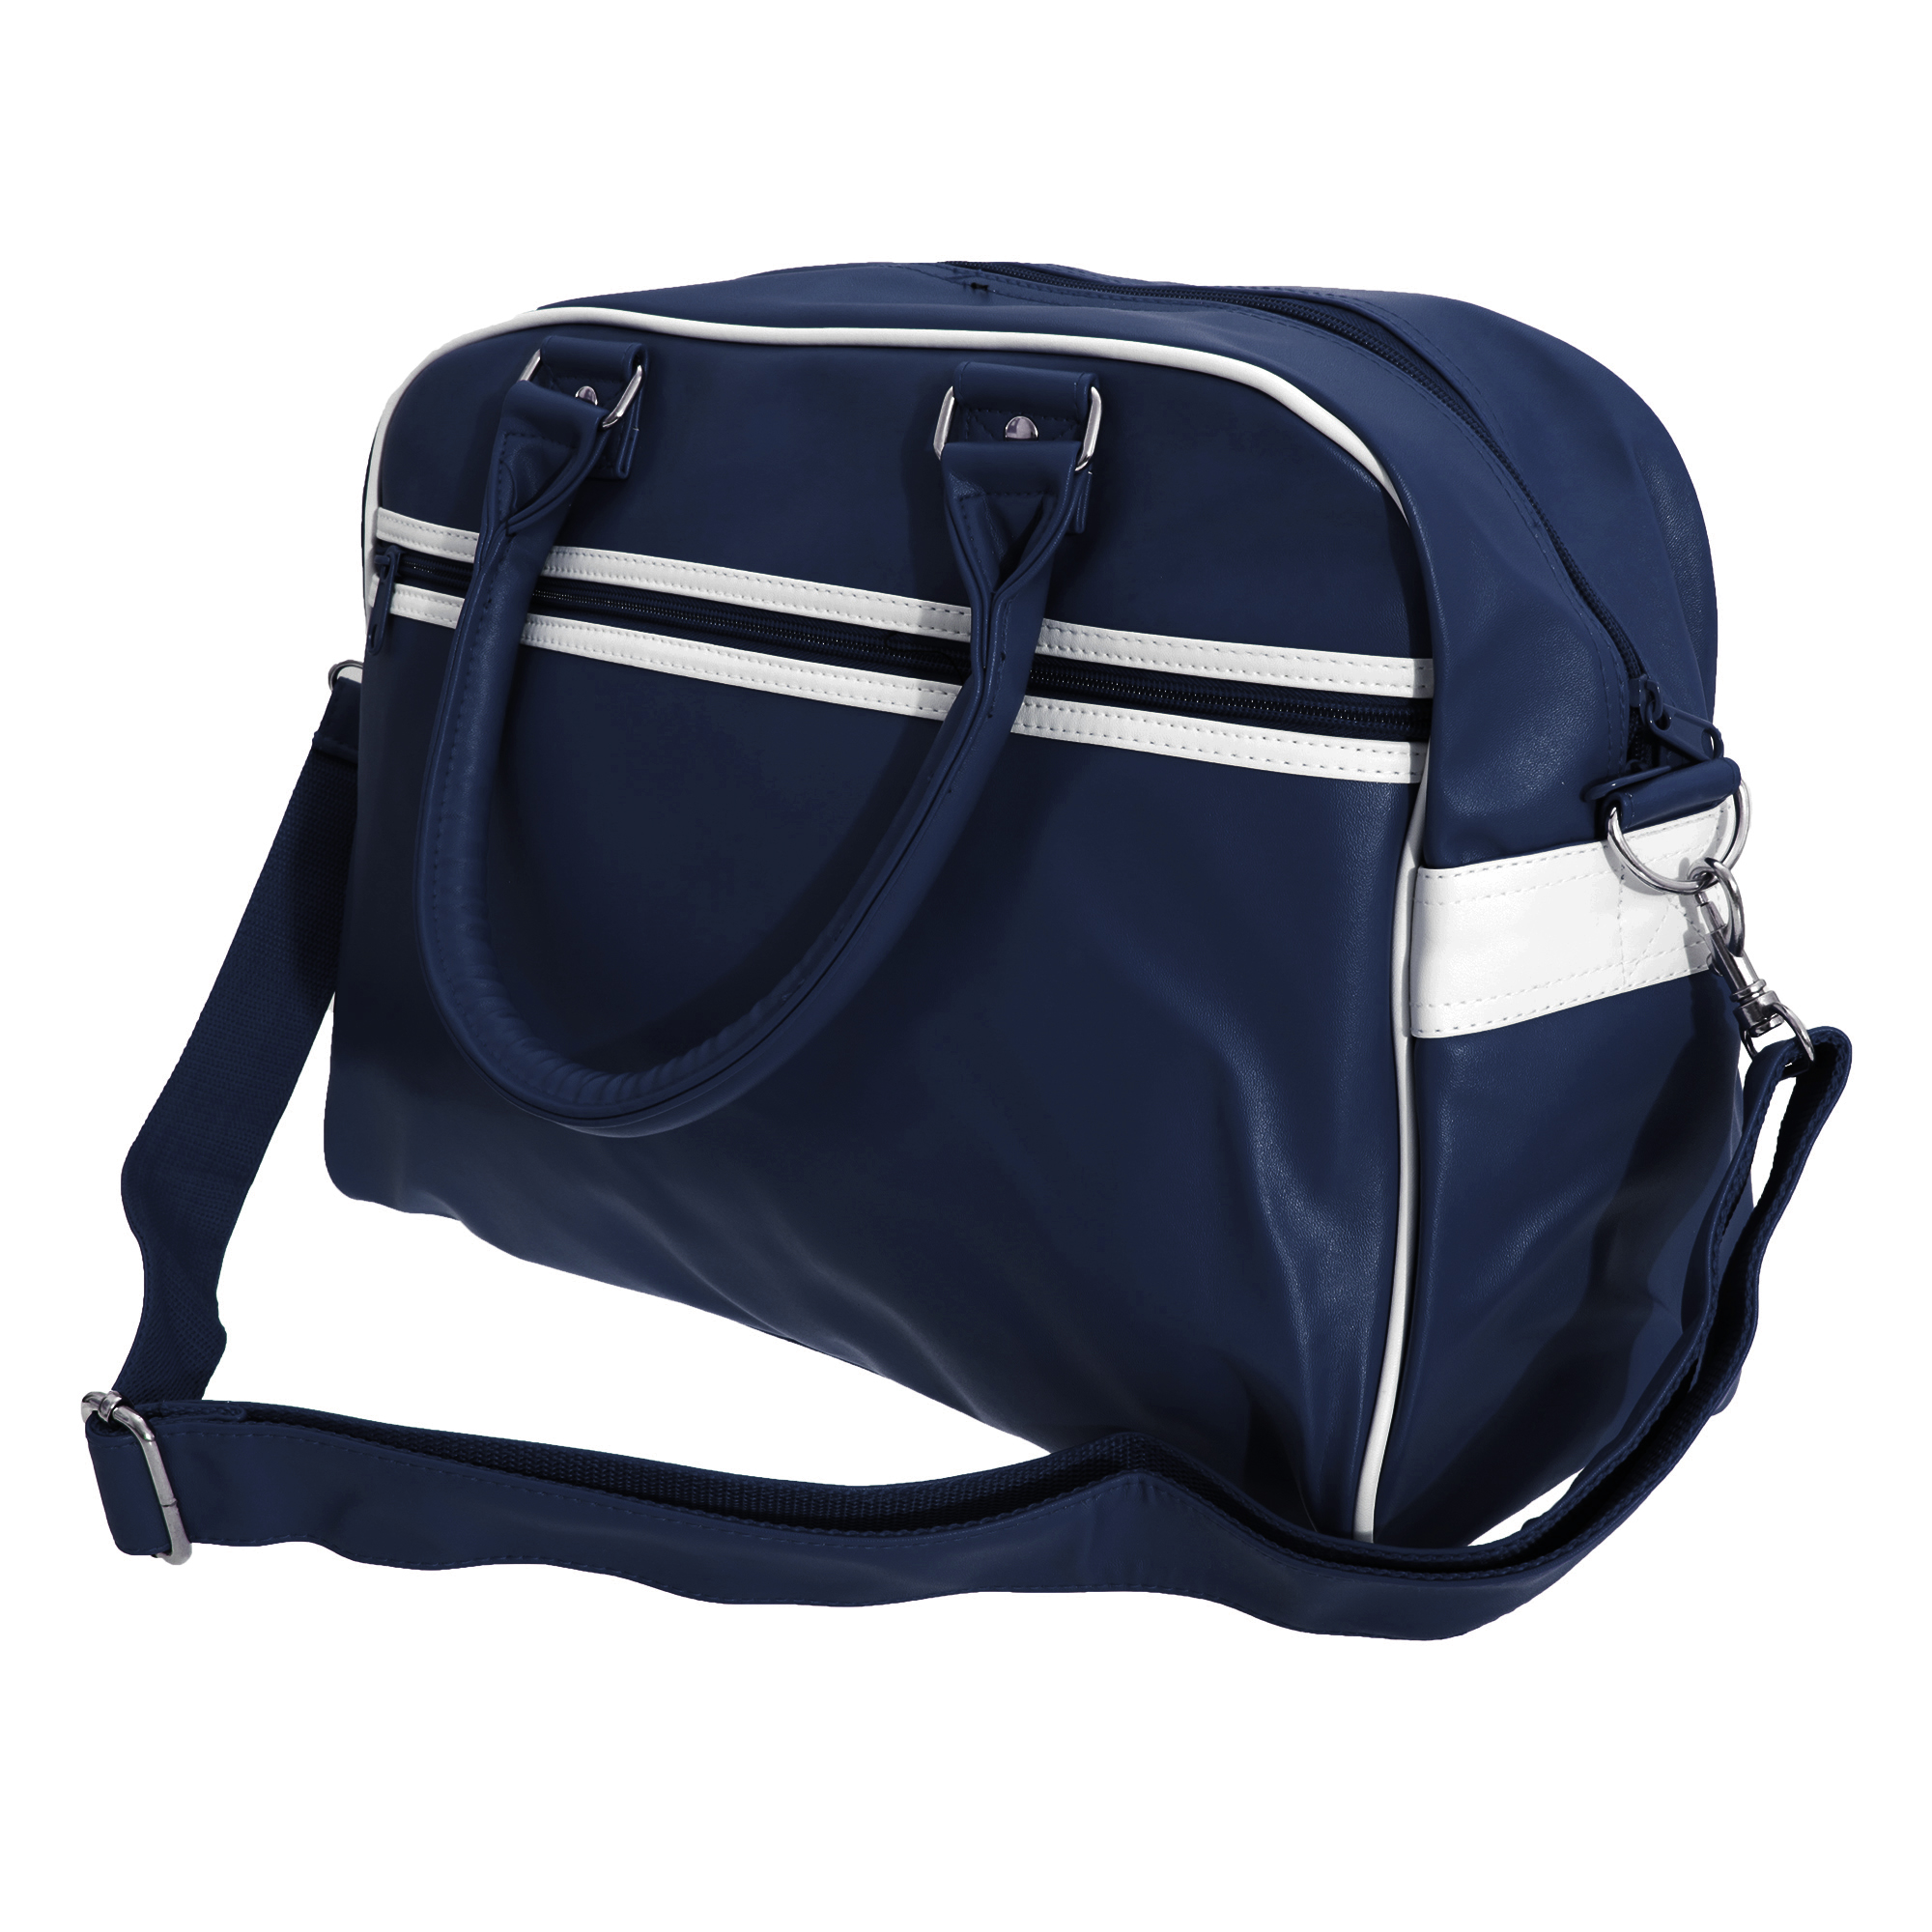 Bagbase Original Retro Shoulder Strap Bowling Bag (Pack of 2) (One Size) (French Navy/White)